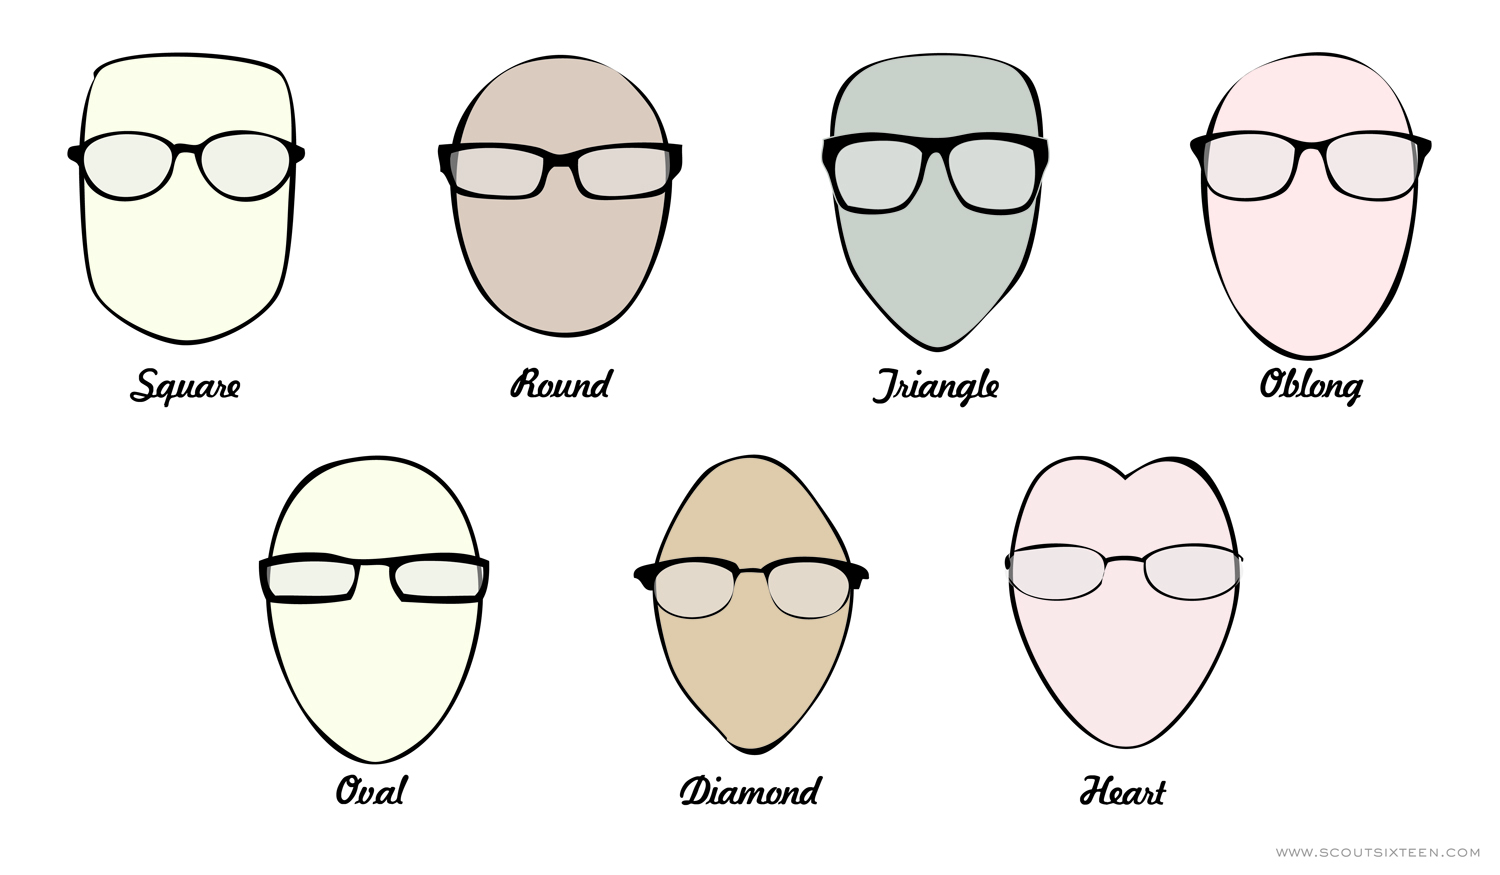 Best Eyeglass Frame Shape For Square Face : Eyewear Guide: How to Choose the Correct Frames For Your ...